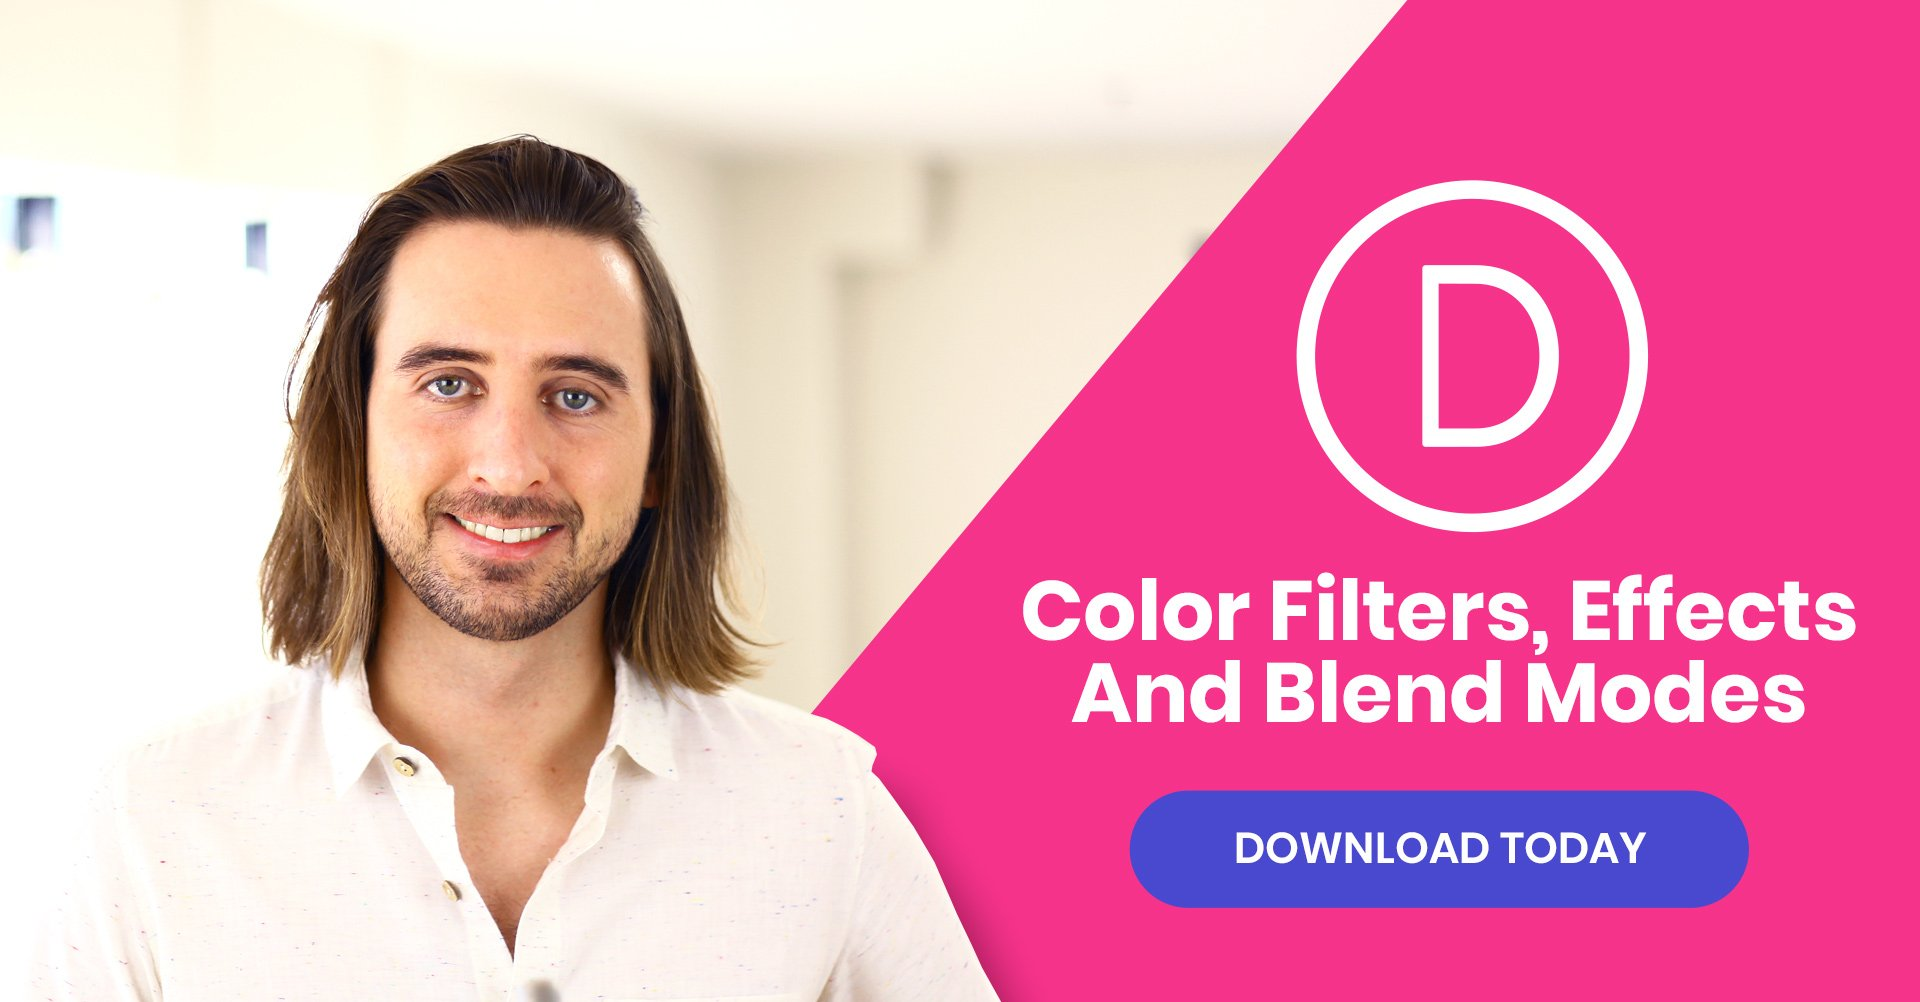 Divi Feature Update! Introducing Color Filters, Effects And Blend Modes For All Images, Modules, Rows and Sections